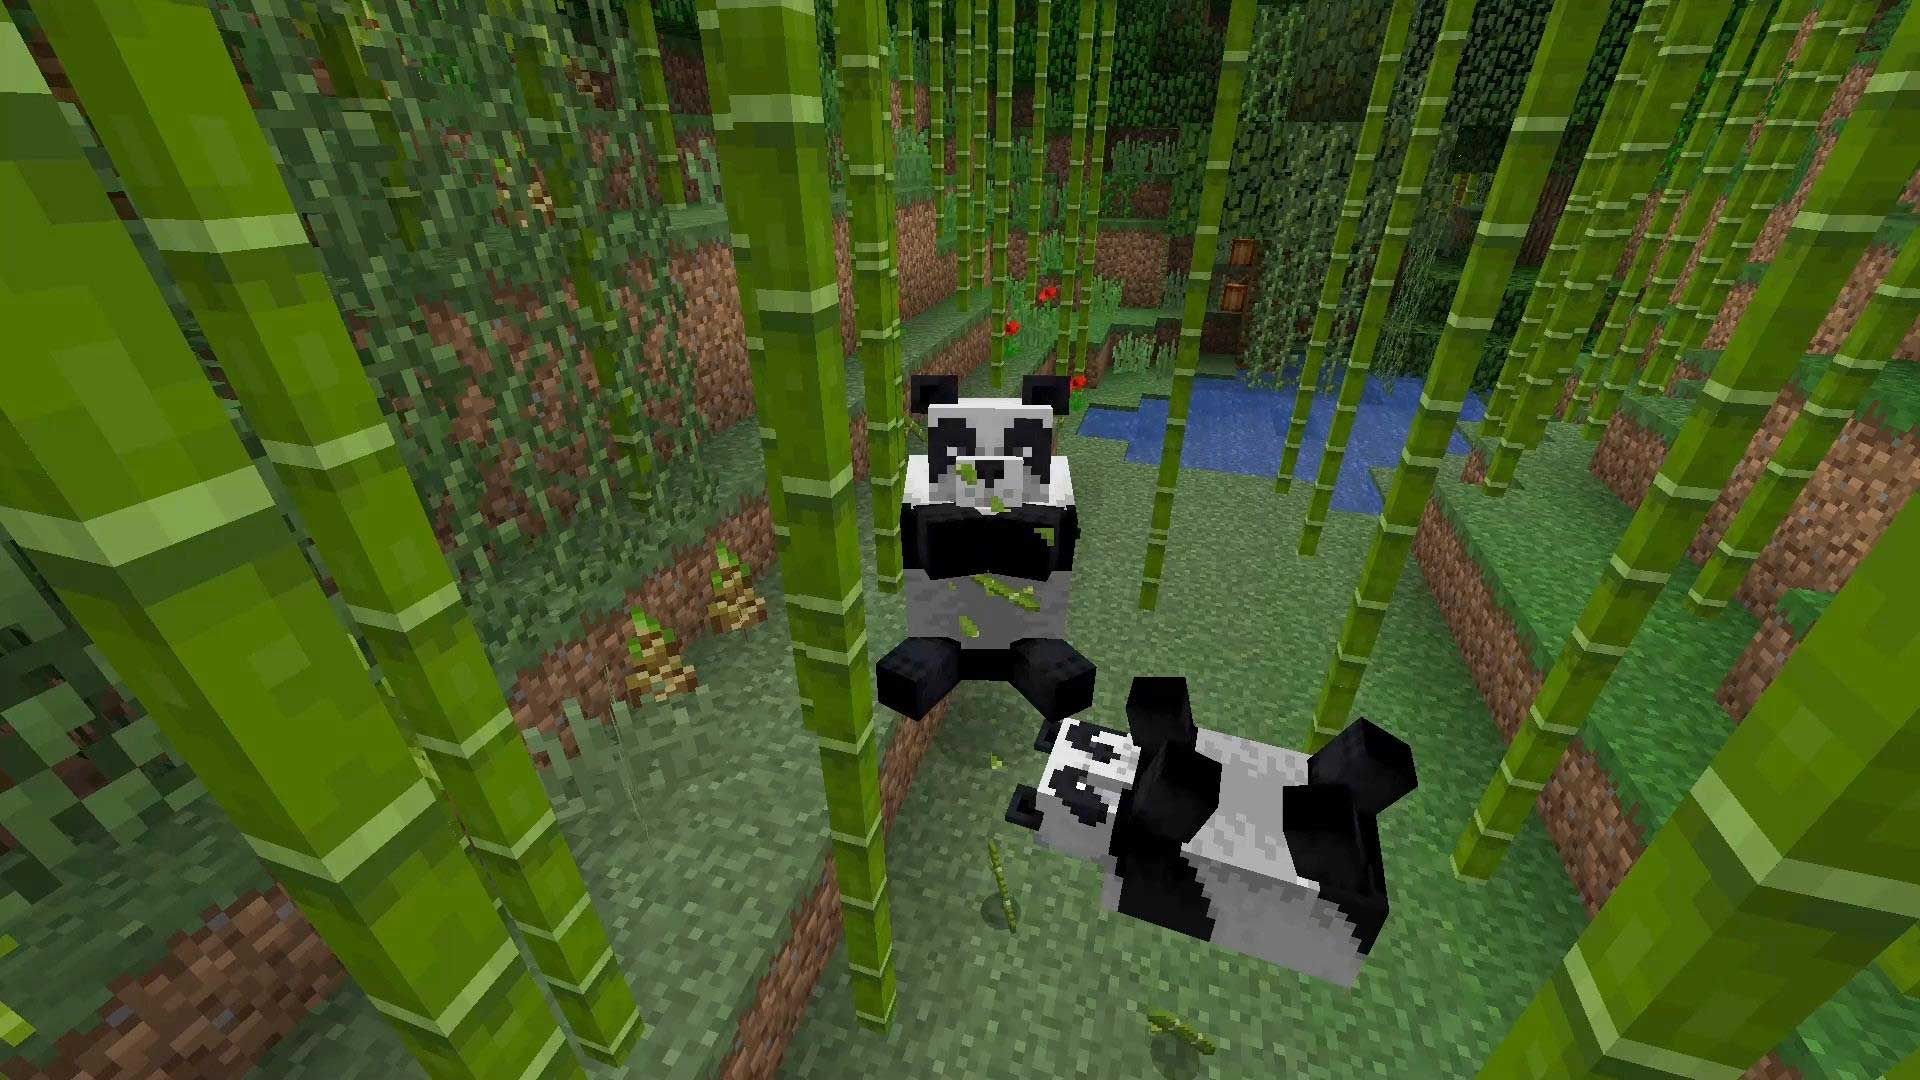 Finding bamboo in Minecraft Bedrock, growing it and then using it